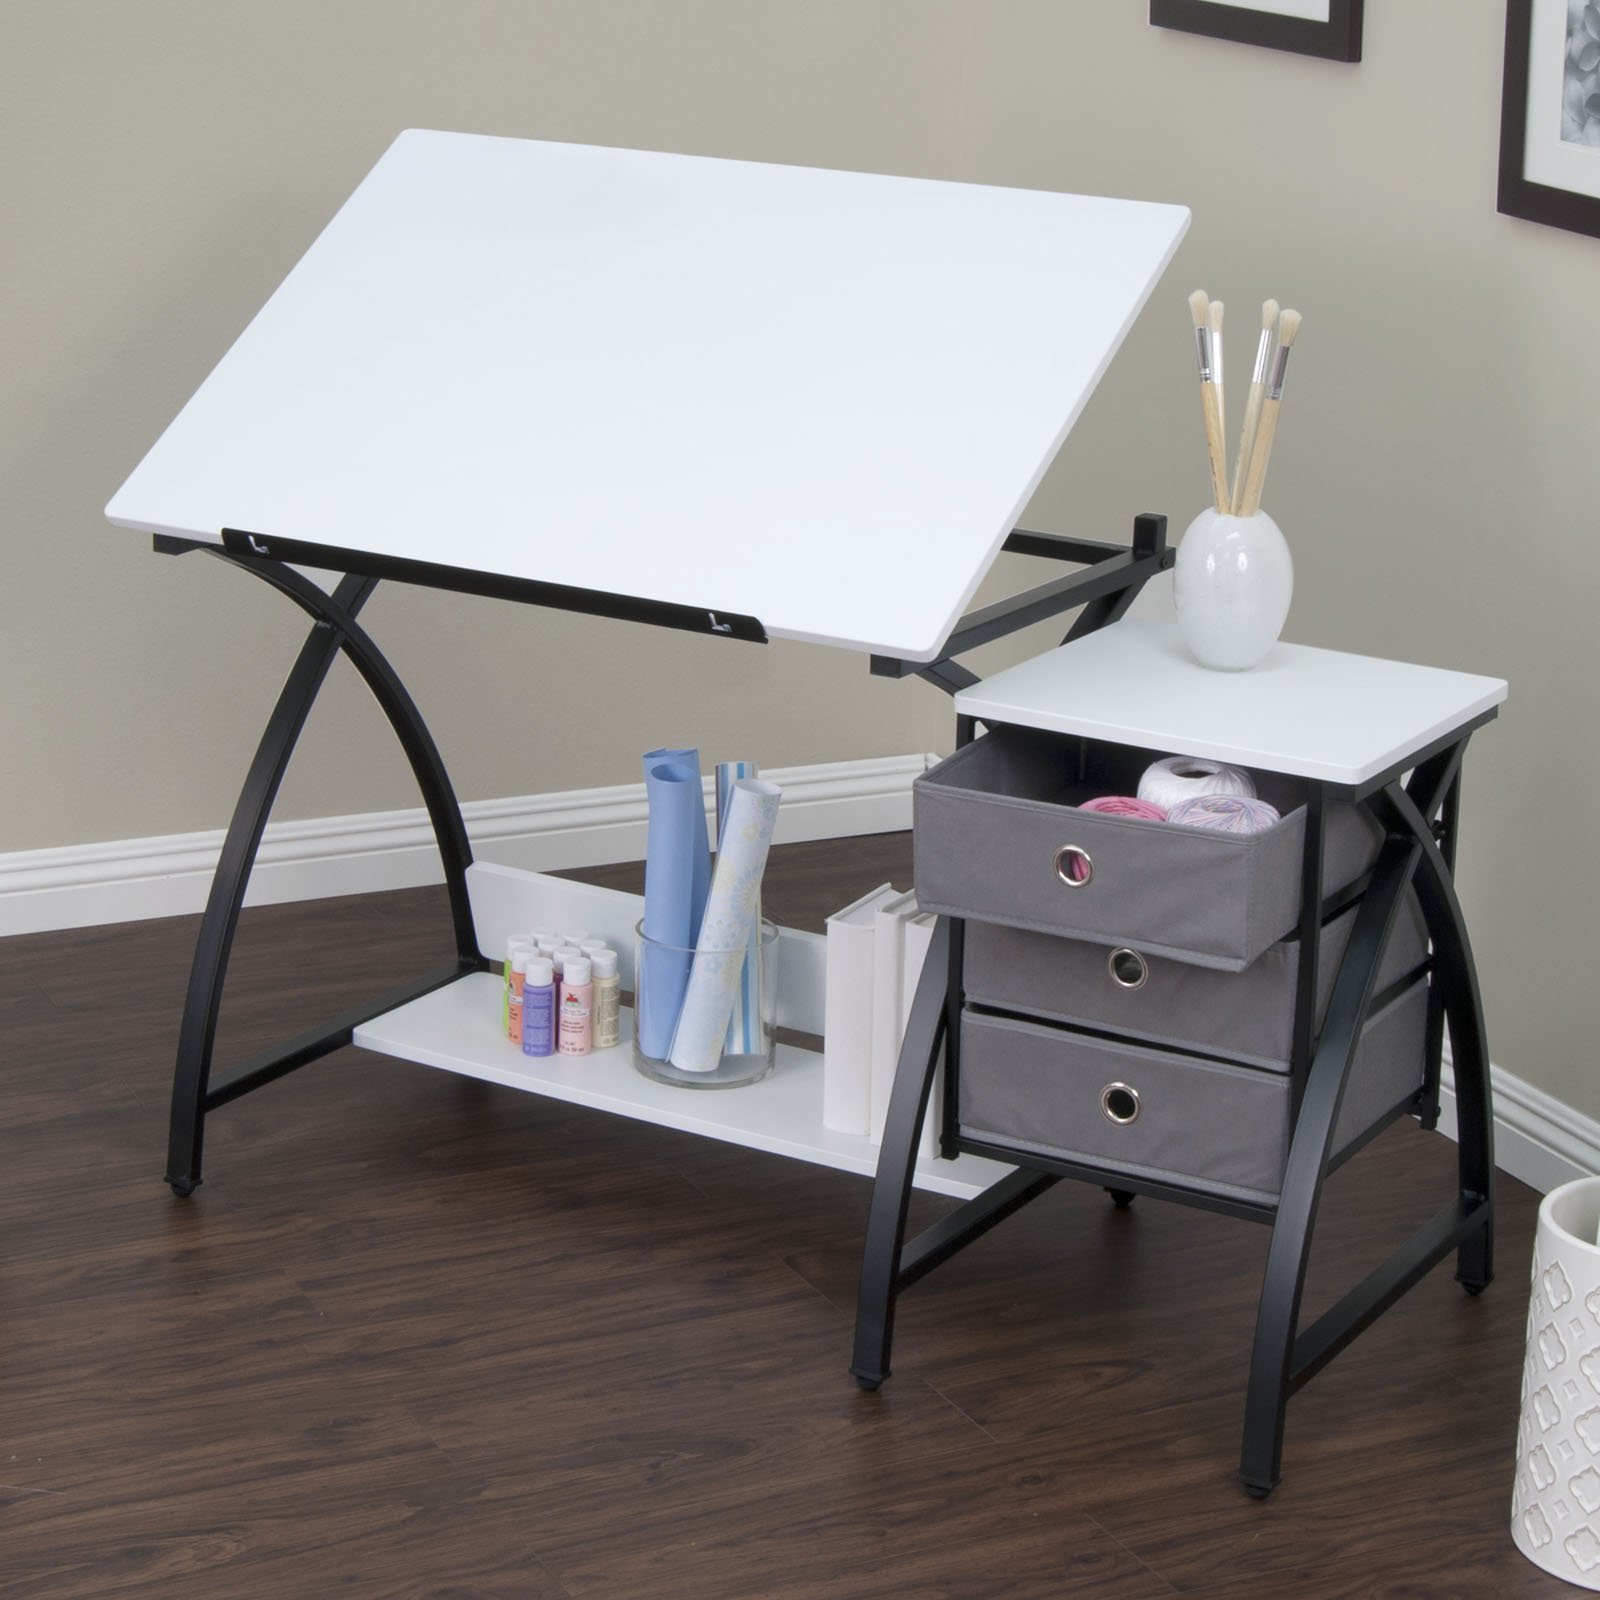 Studio Designs 13326 Comet Center with Stool, Black/White by SD STUDIO DESIGNS (Image #3)